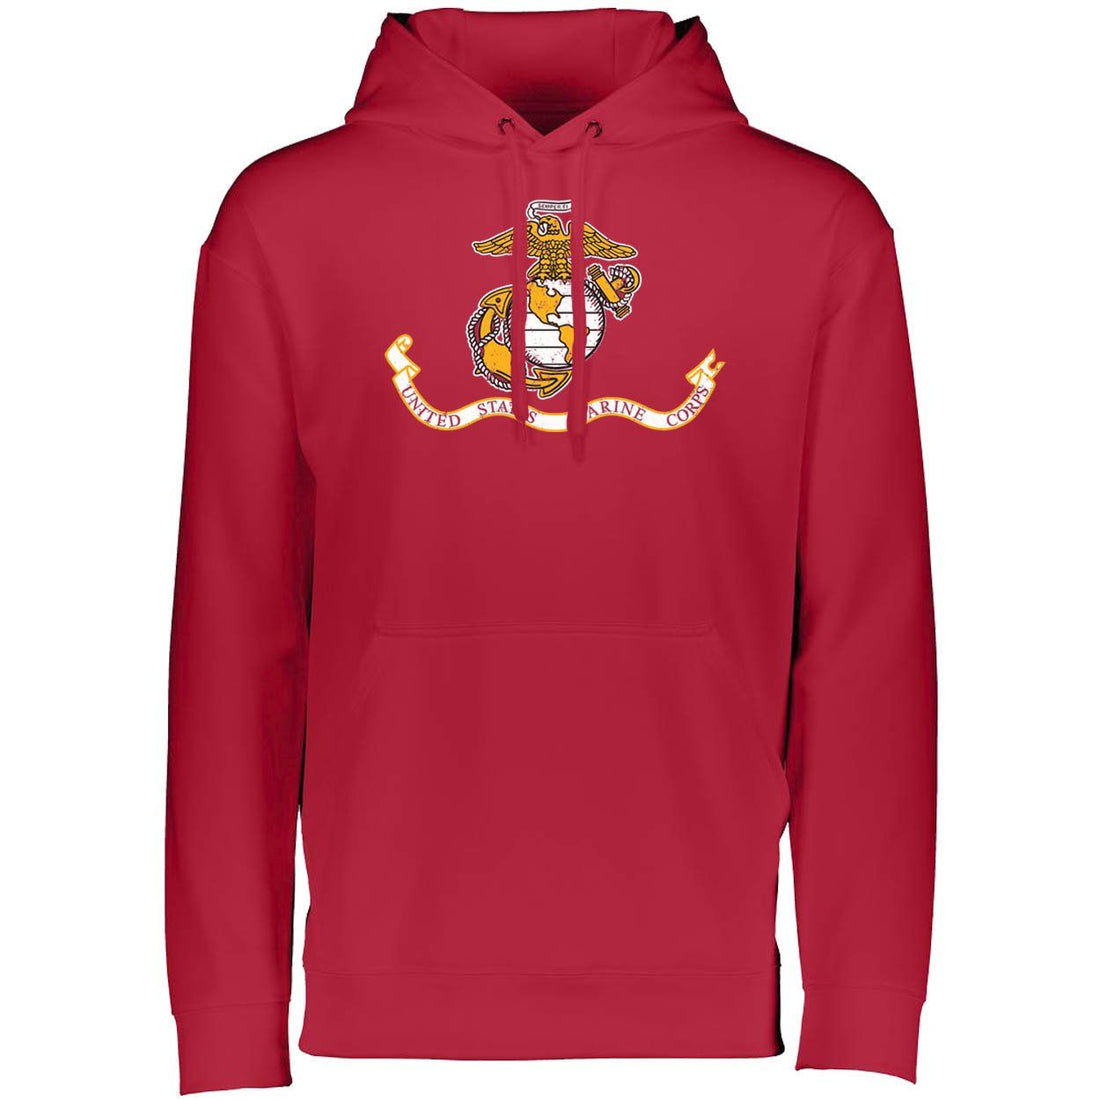 Marines Distressed Banner Dri-Fit Performance Hoodie - Marine Corps Direct